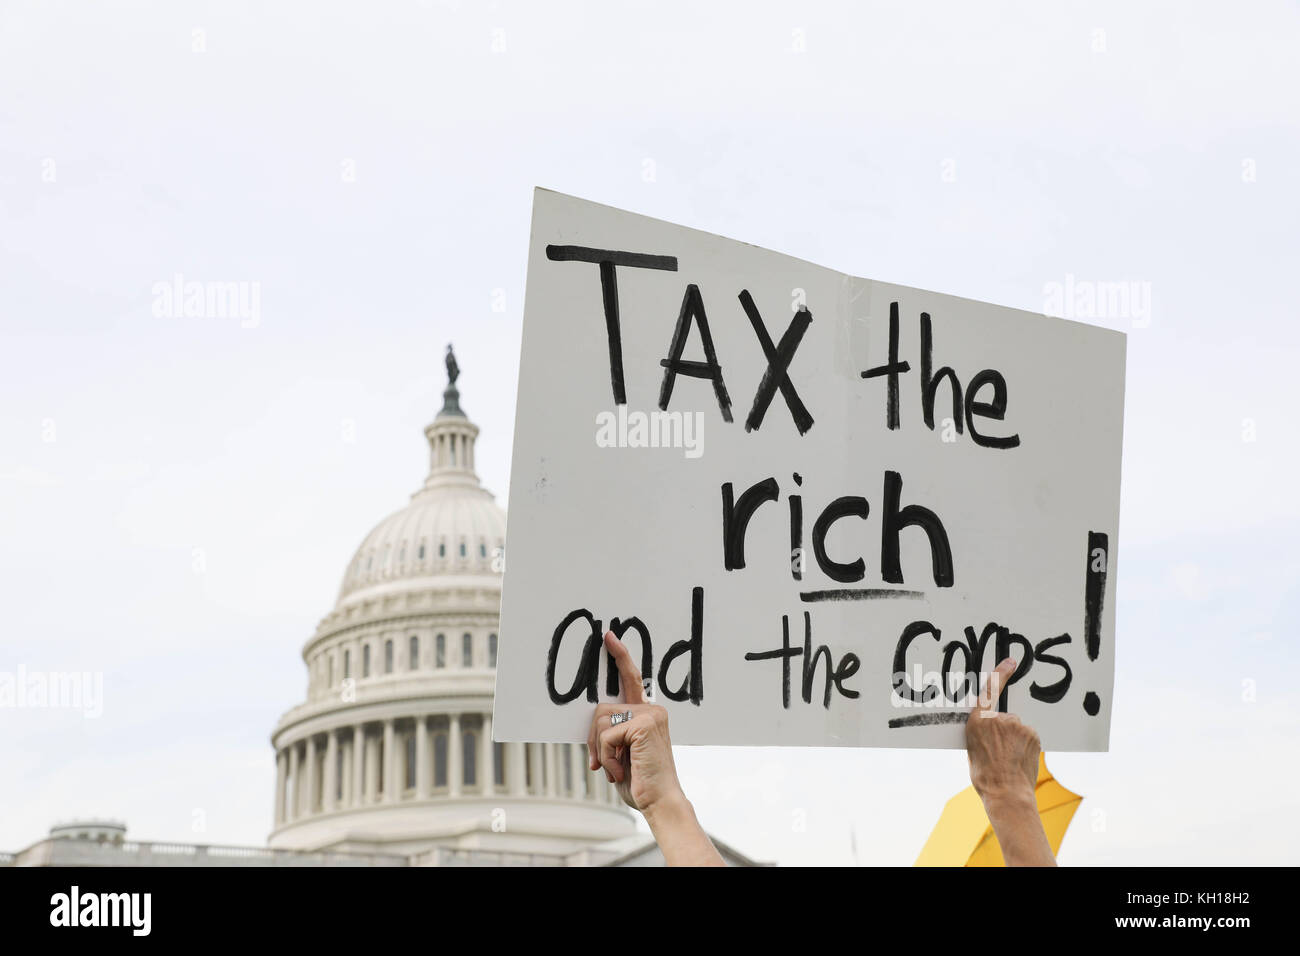 A protestor holds up a sign saying 'Tax the Rich' during a Democratic rally in opposition to the Republican Tax - Stock Image